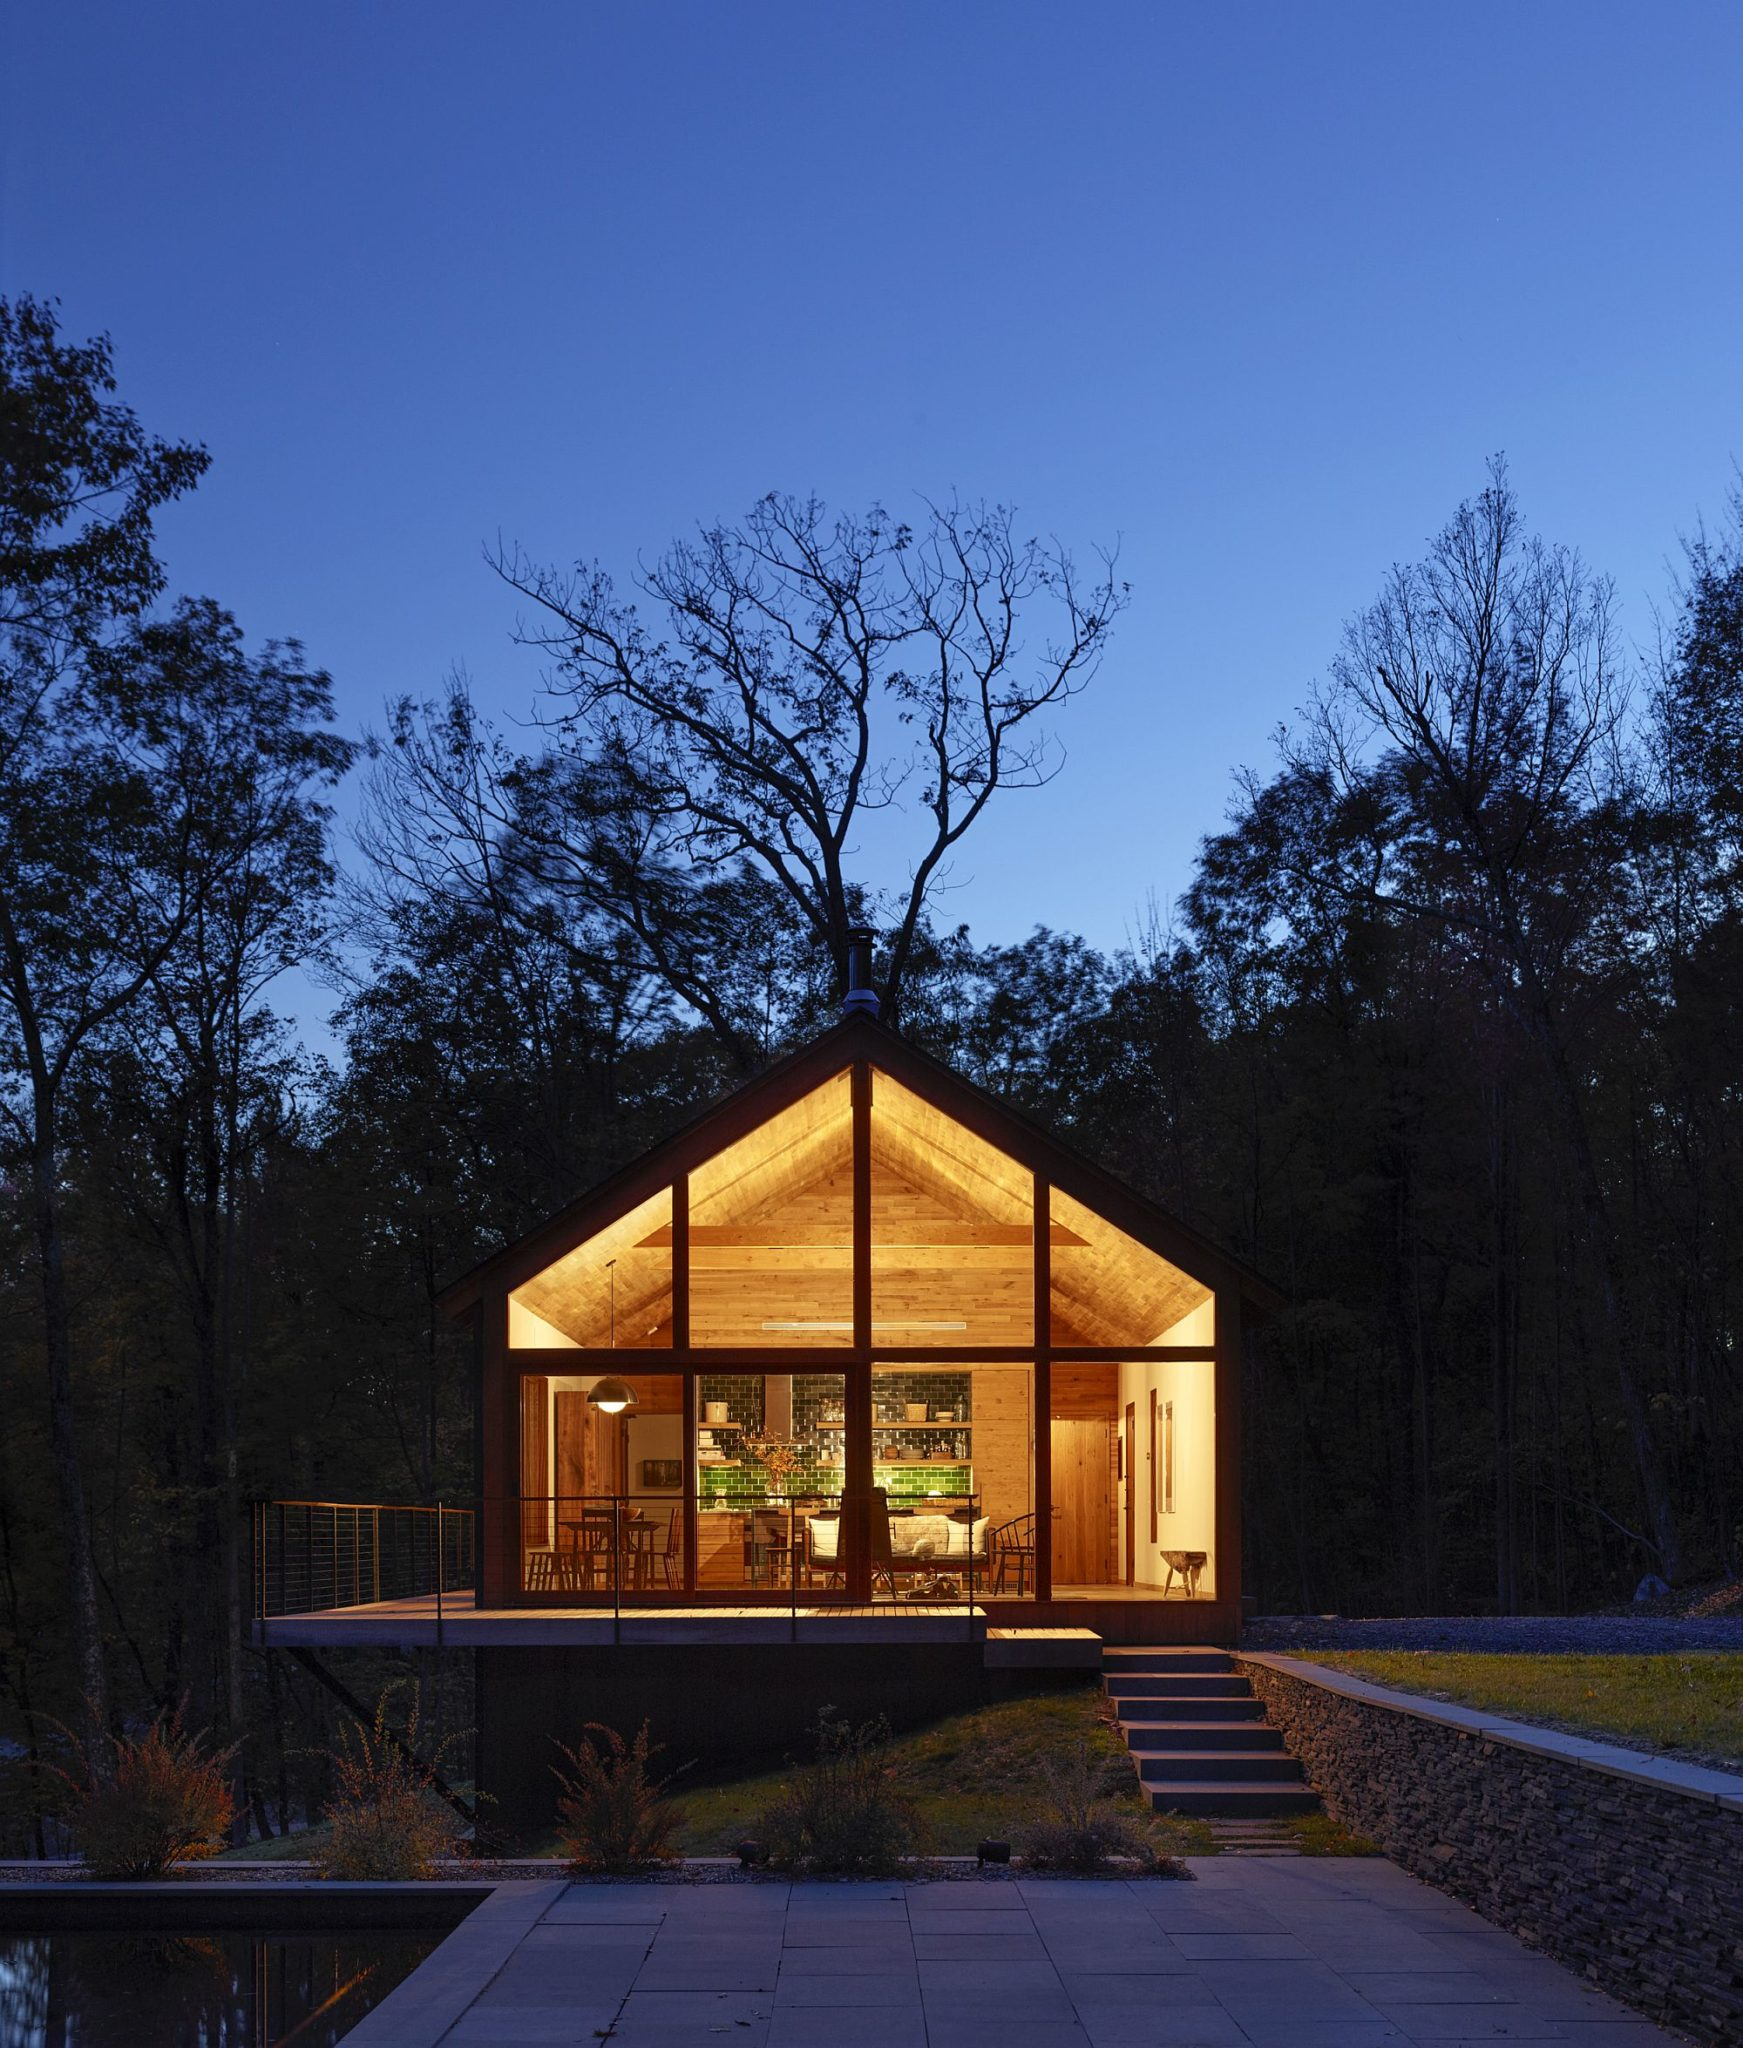 Hudson Woods: Sustainable Modern Cabins Offer An Escape